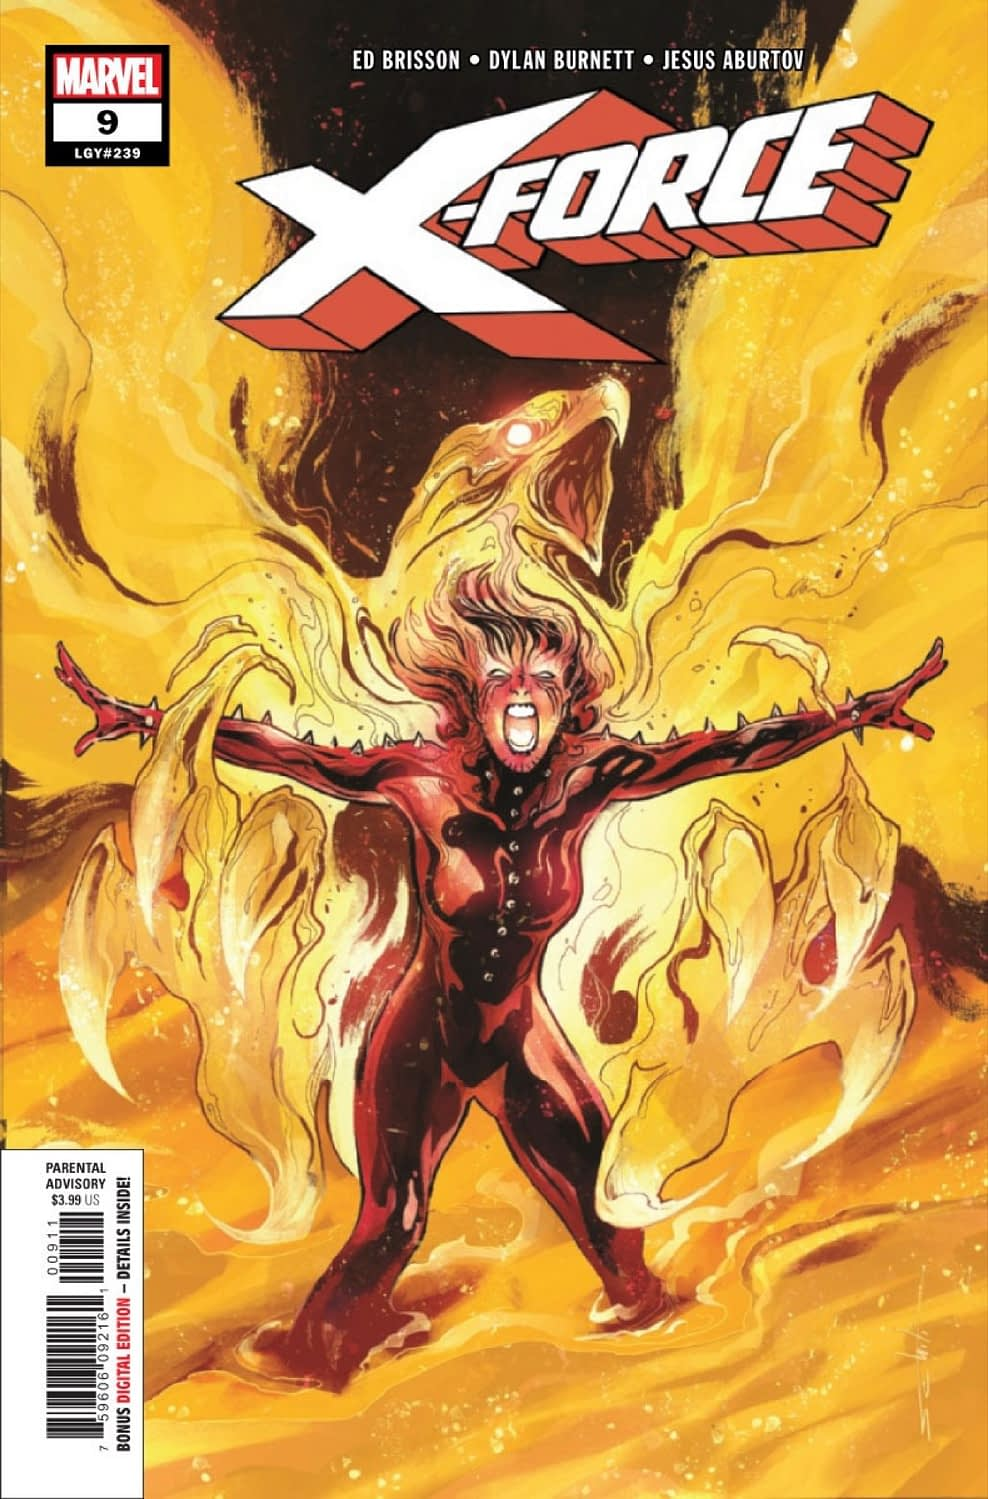 X-Force #9 Preview